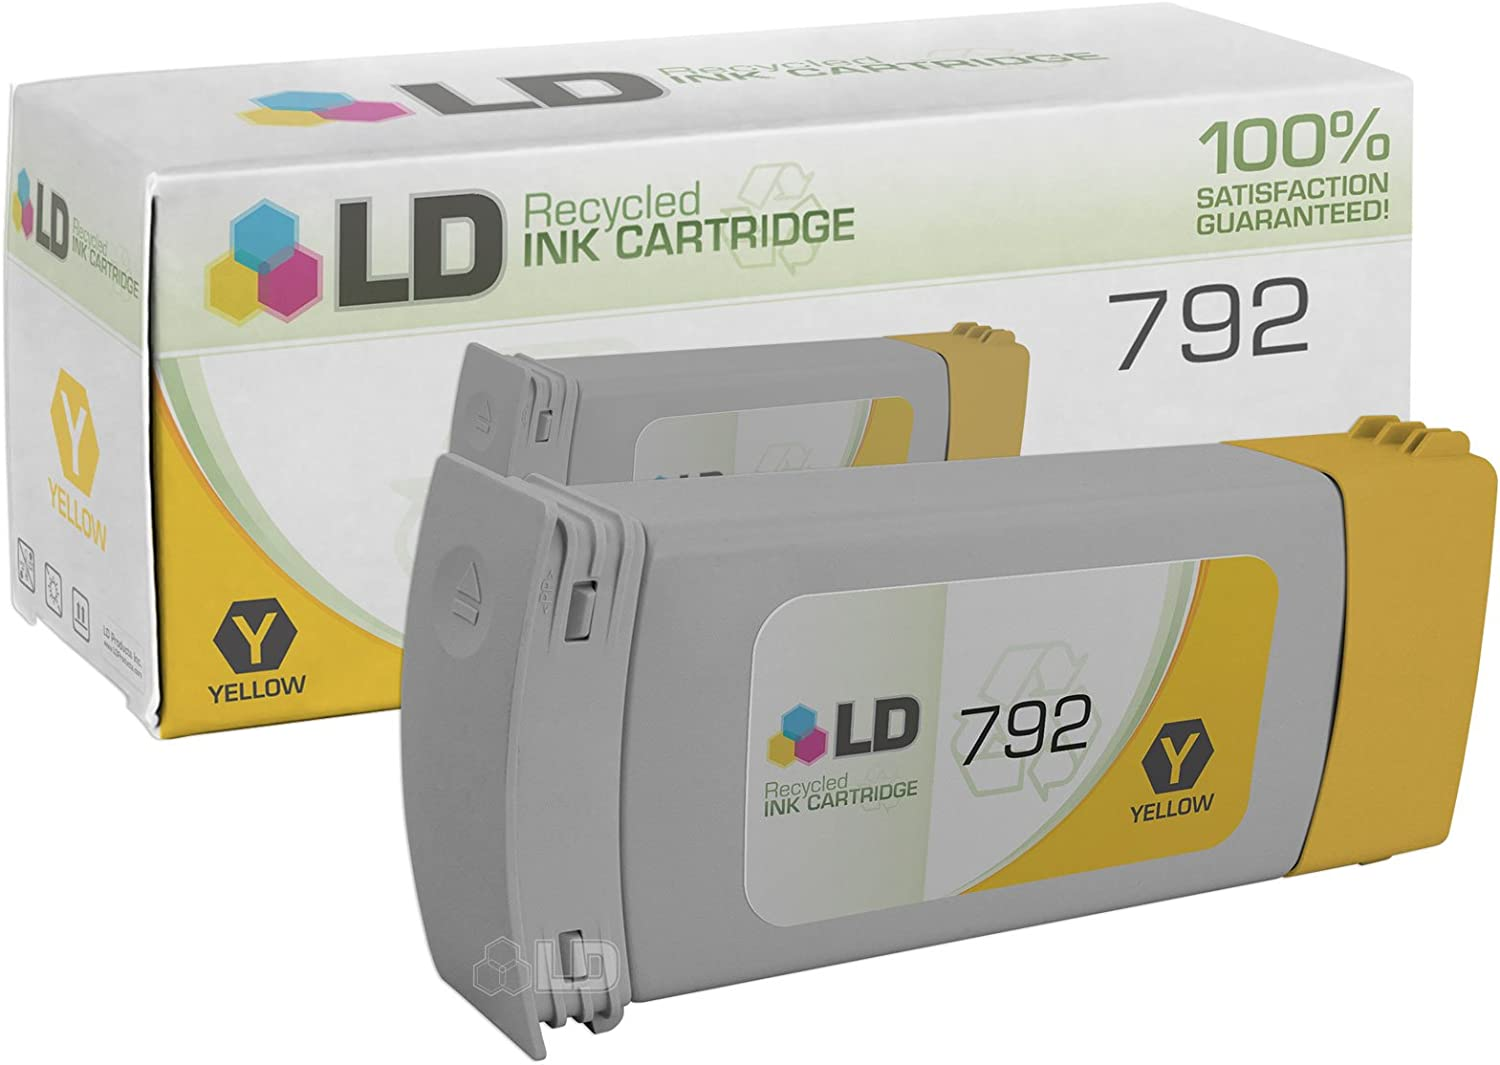 LD Remanufactured Ink Cartridge Replacement for HP 792 CN708A (Yellow)